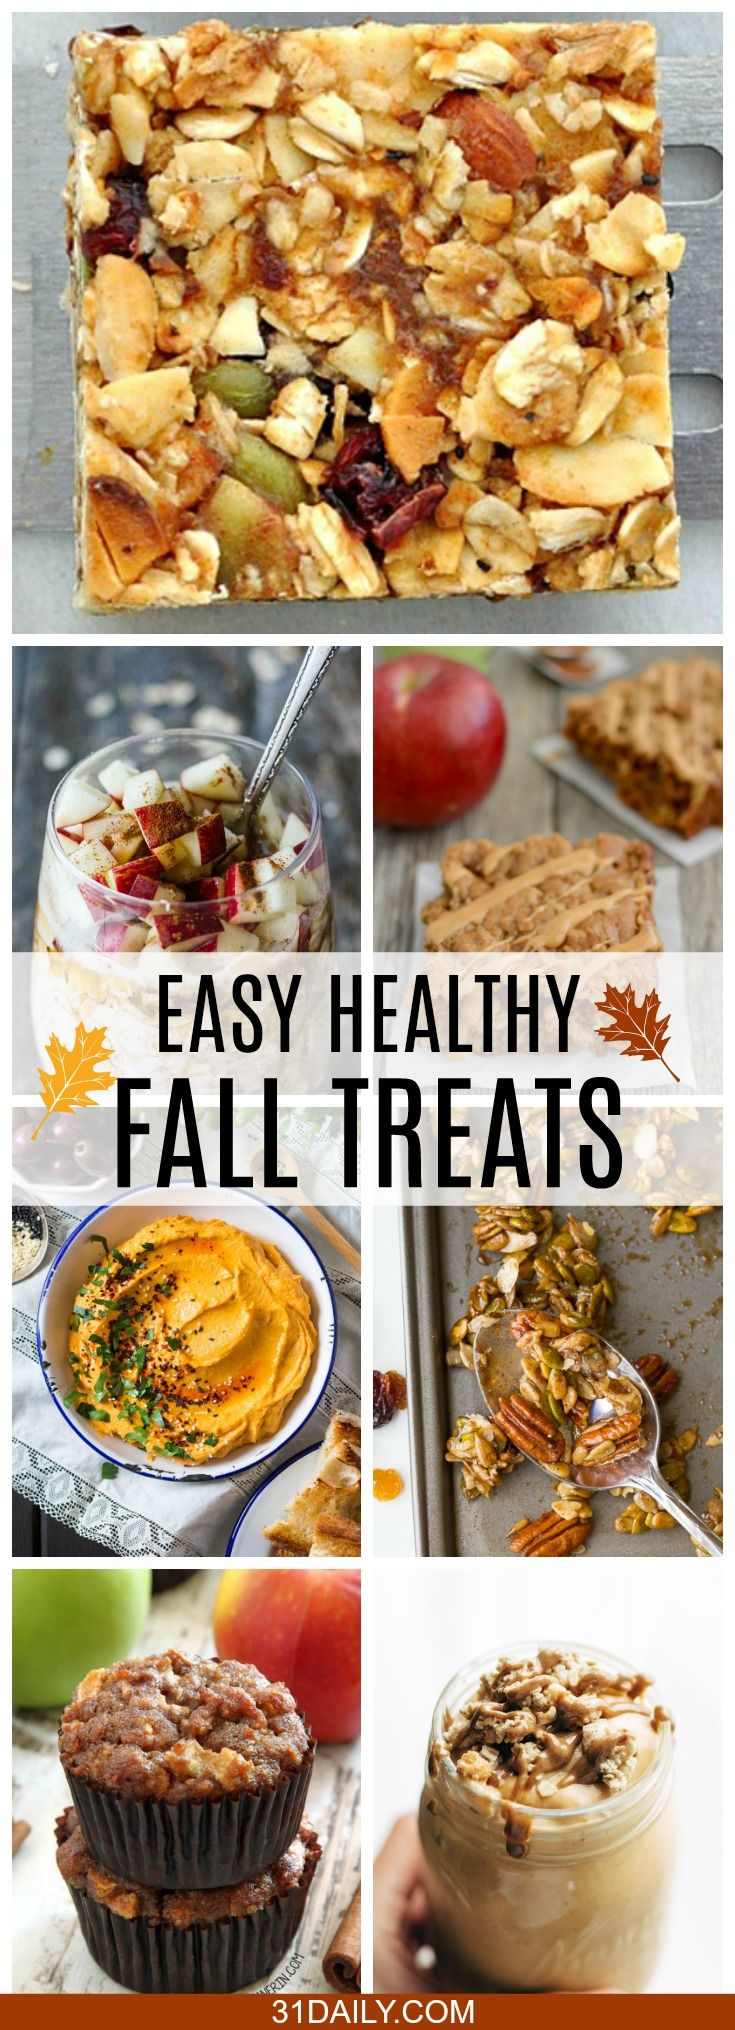 Easy and Healthy Fall Treats #fallfoods